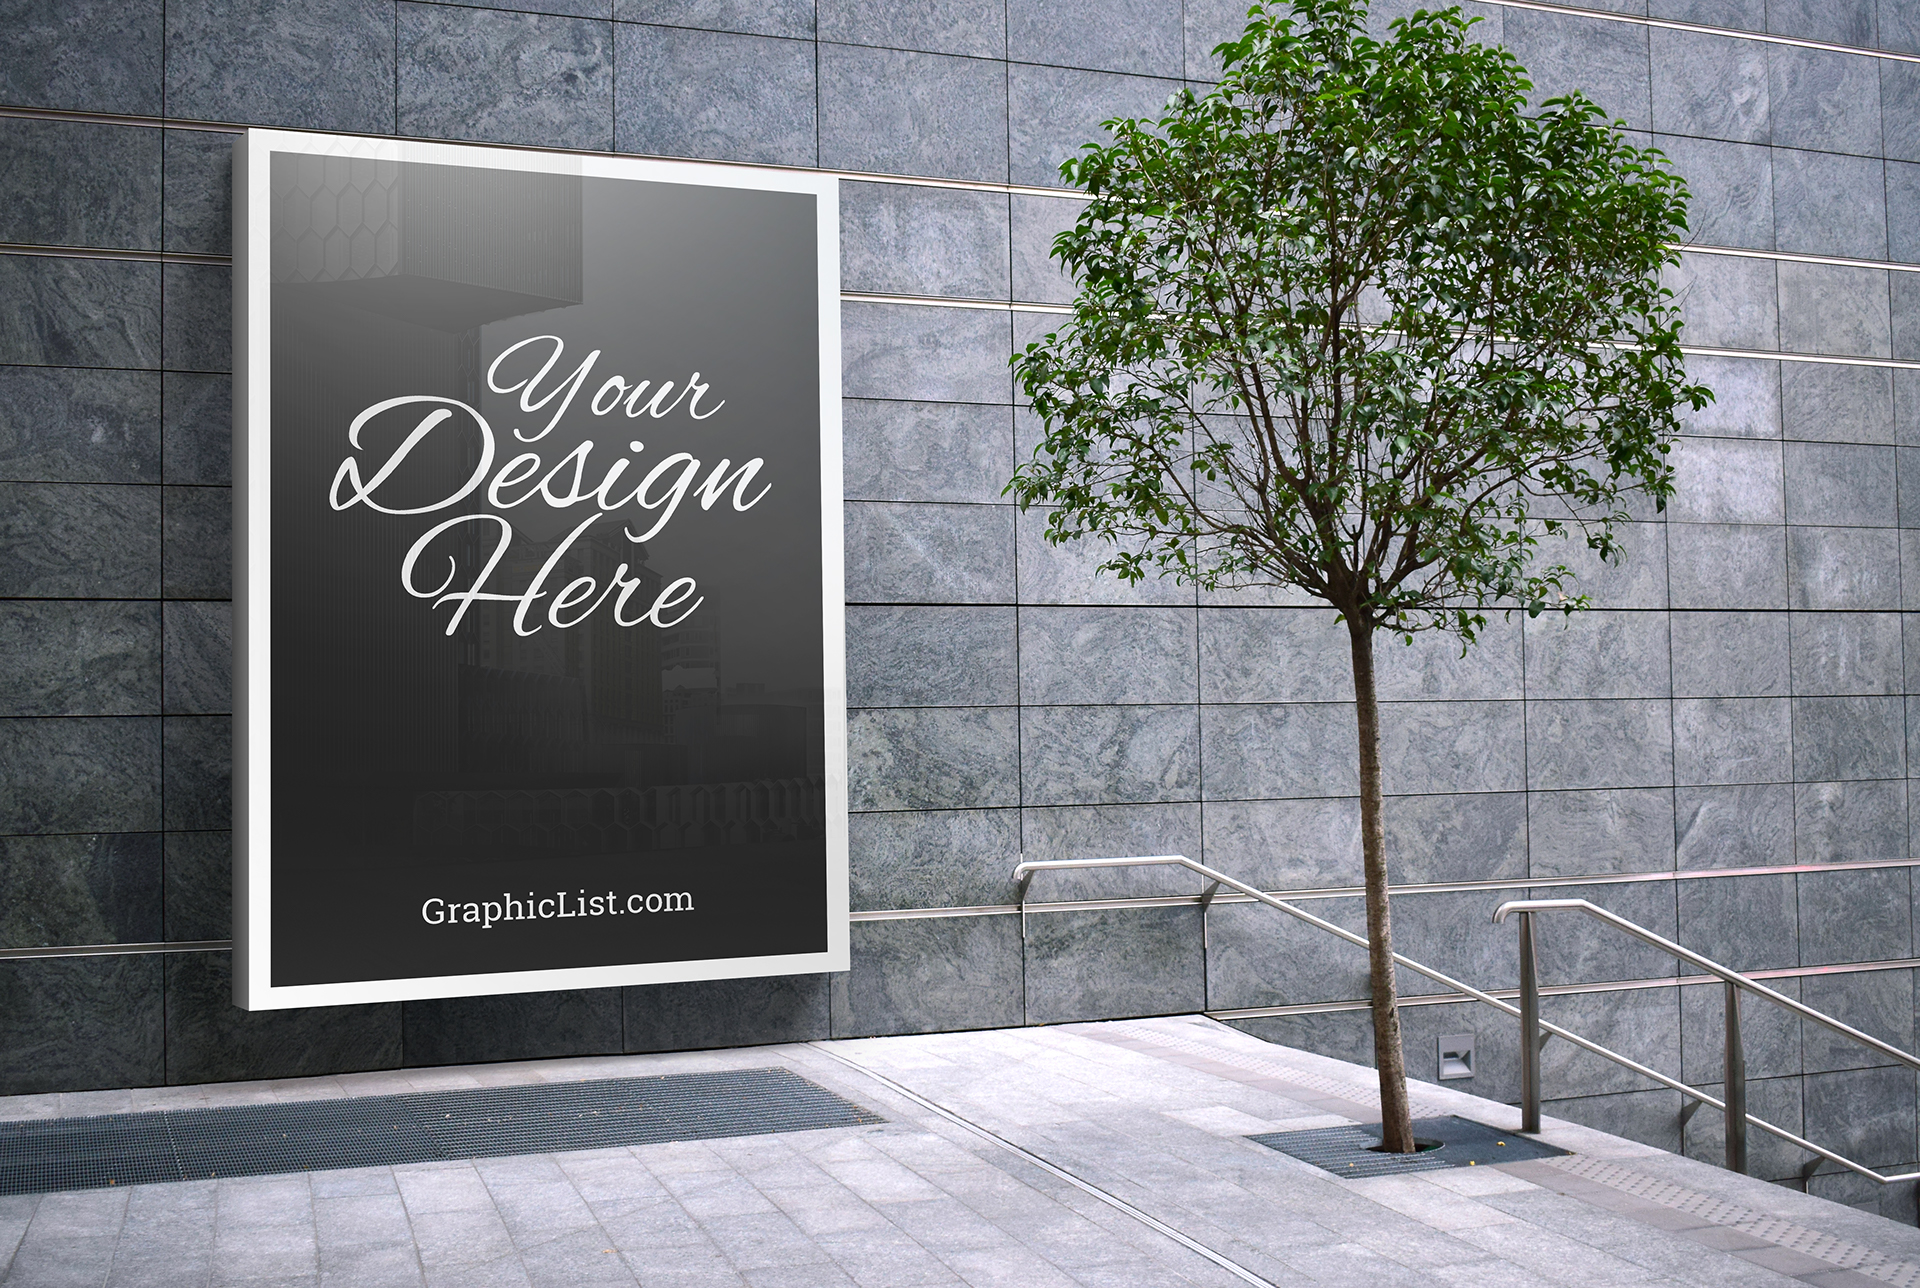 Outdoor advertising mockup #1 2